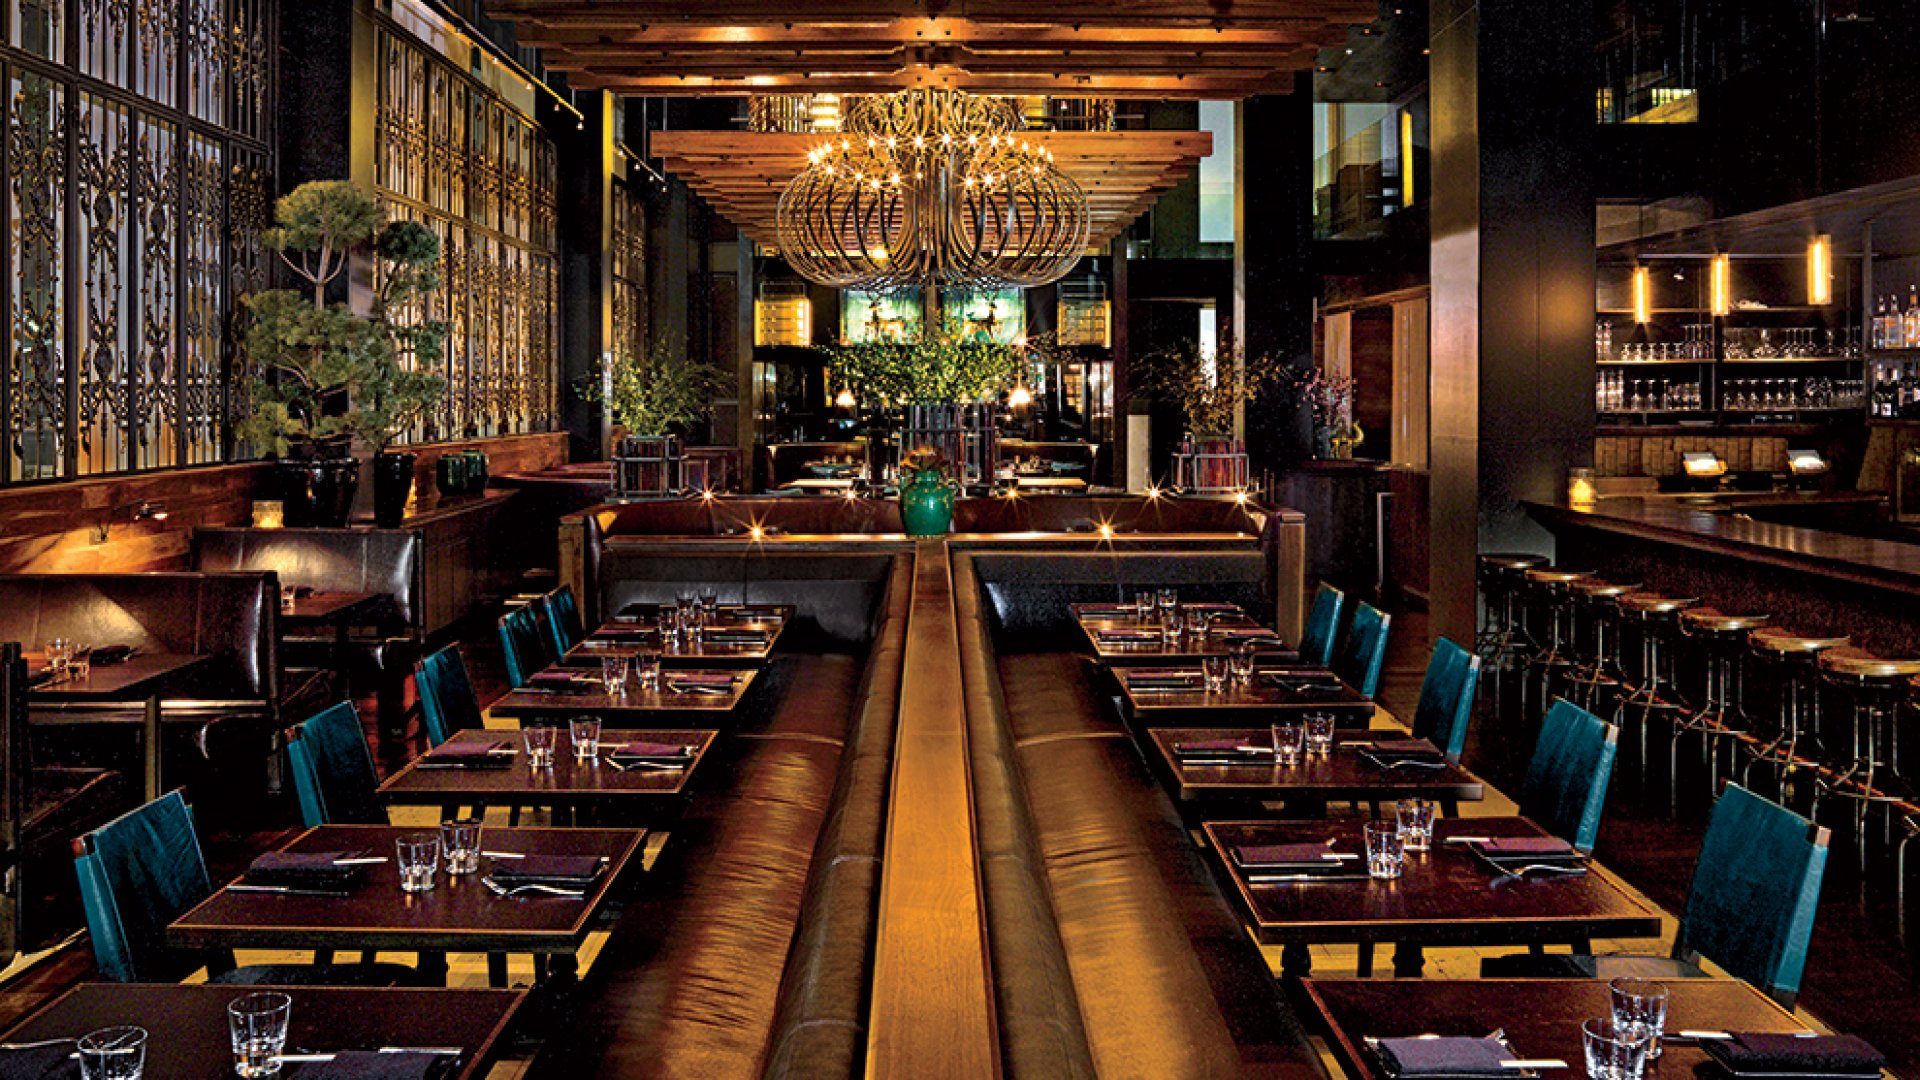 Classic AvroKO work at Manhattan's Zengo restaurant. The rich leather and wood tones, golden light, ceiling timbers, and eclectic mix of custom furniture and found objects are hallmarks of the firm's design portfolio.